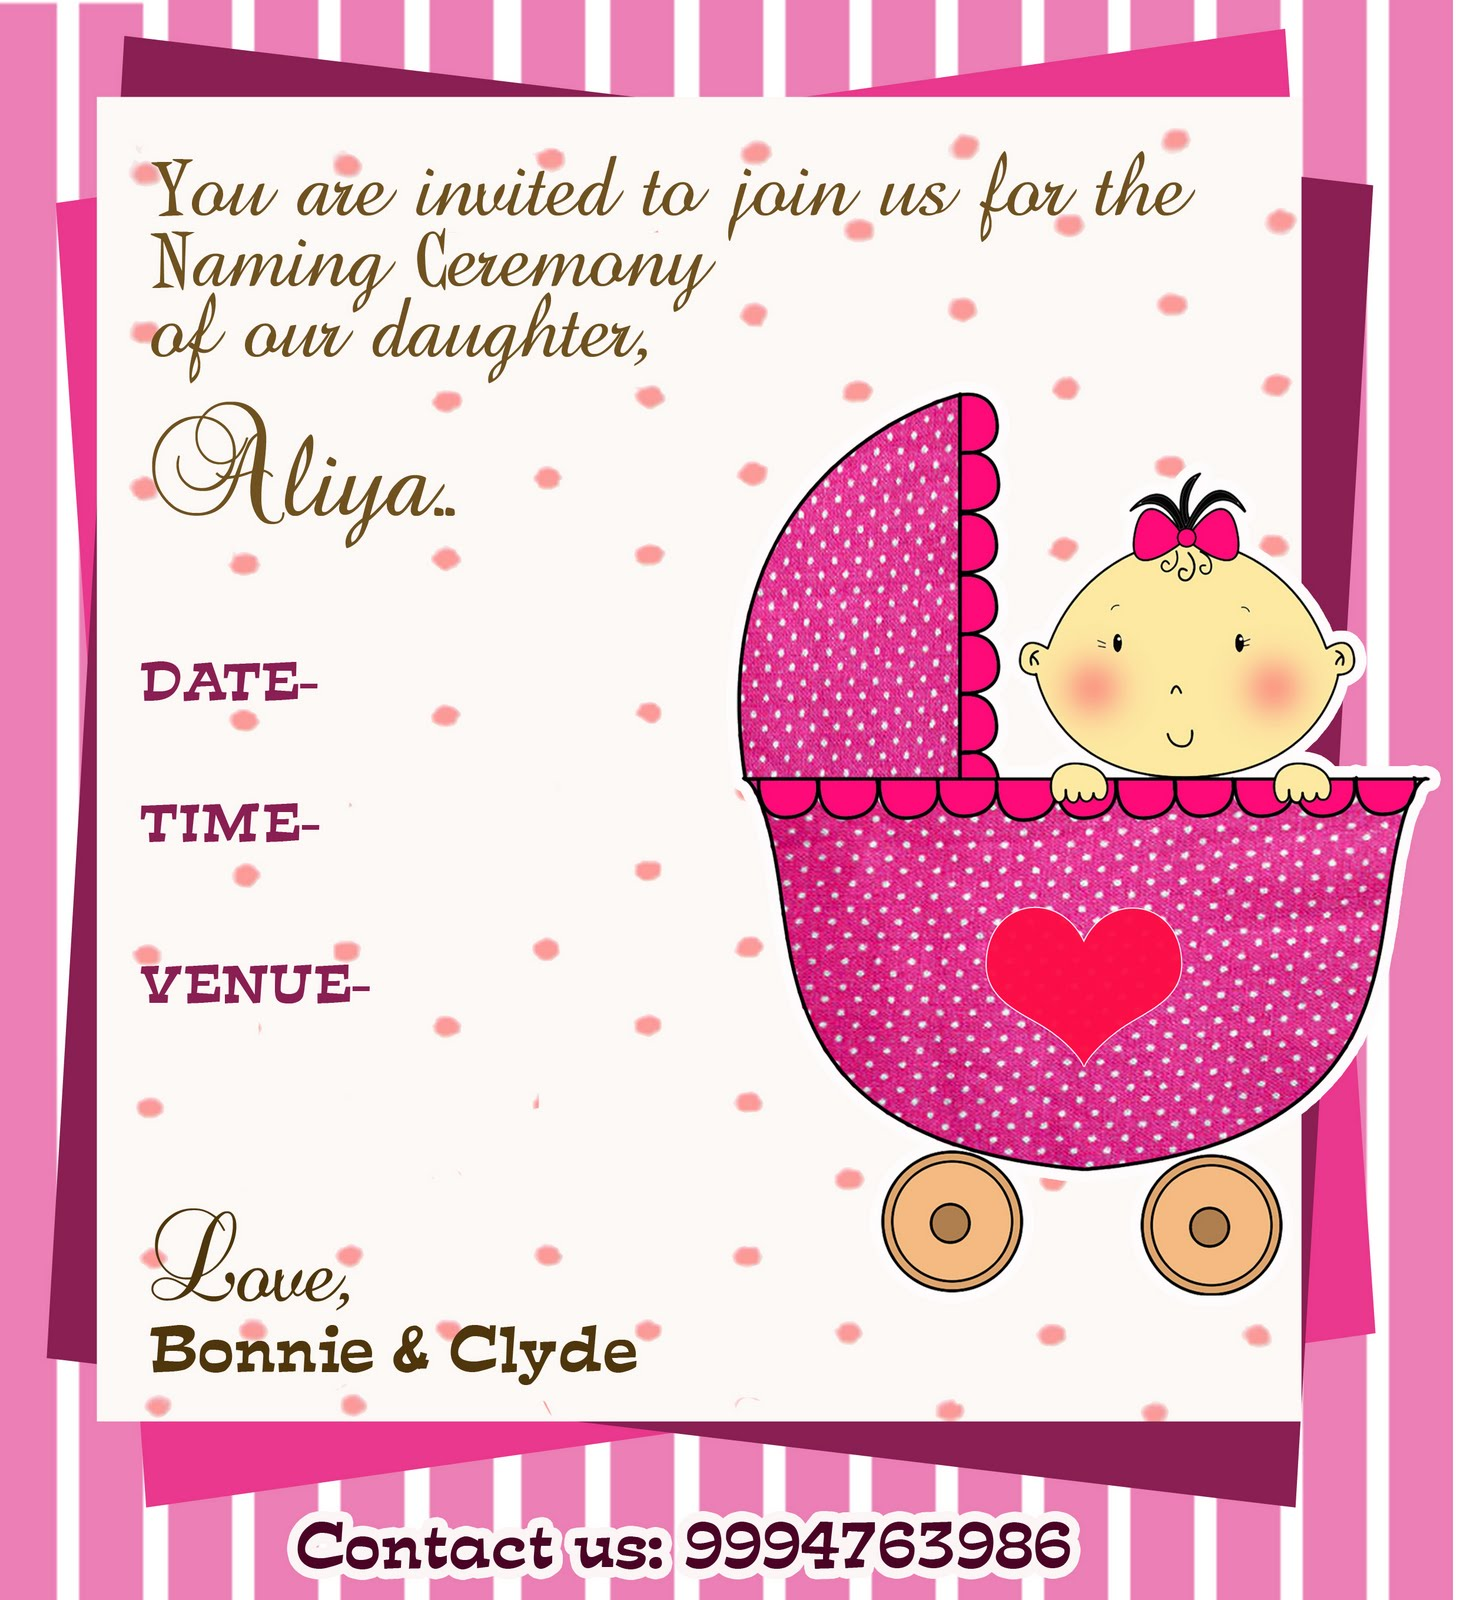 A Naming Ceremony Invite Designed For A Friend